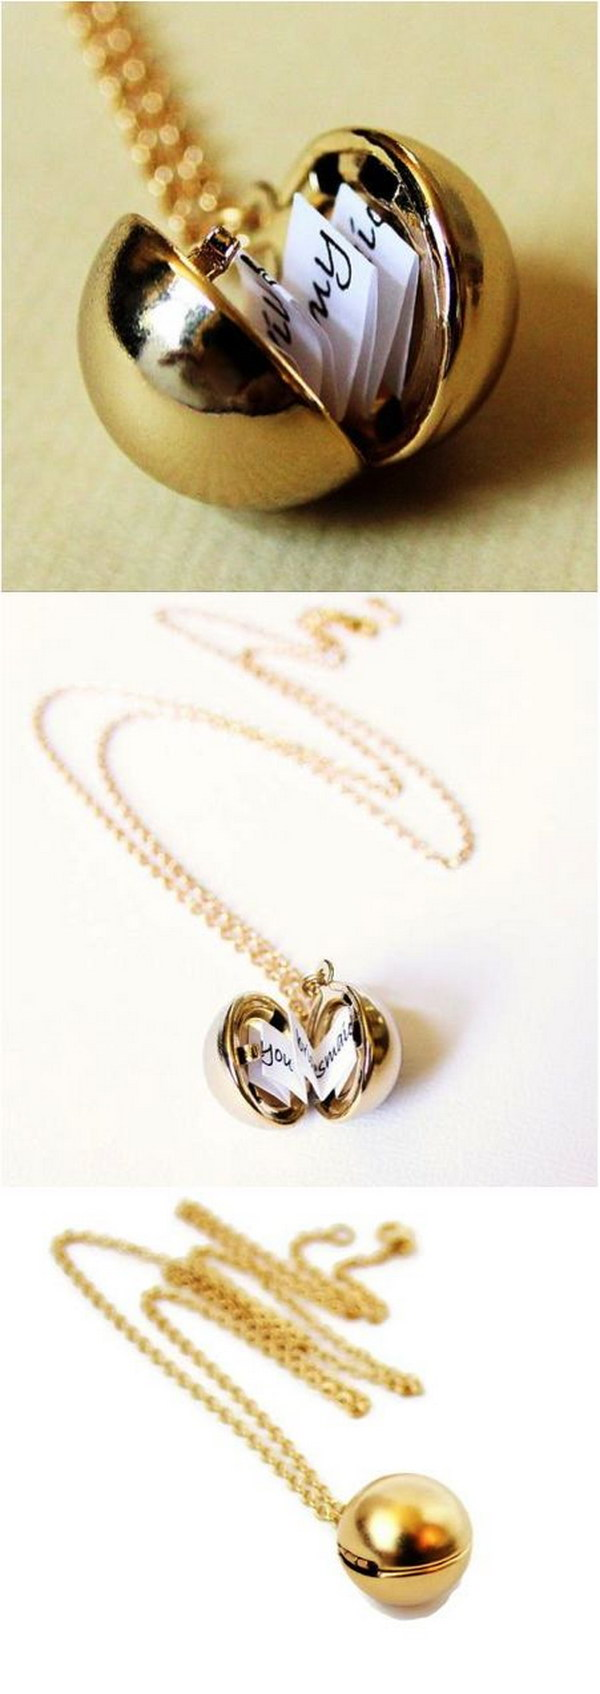 Secret Message Ball Locket Necklace.